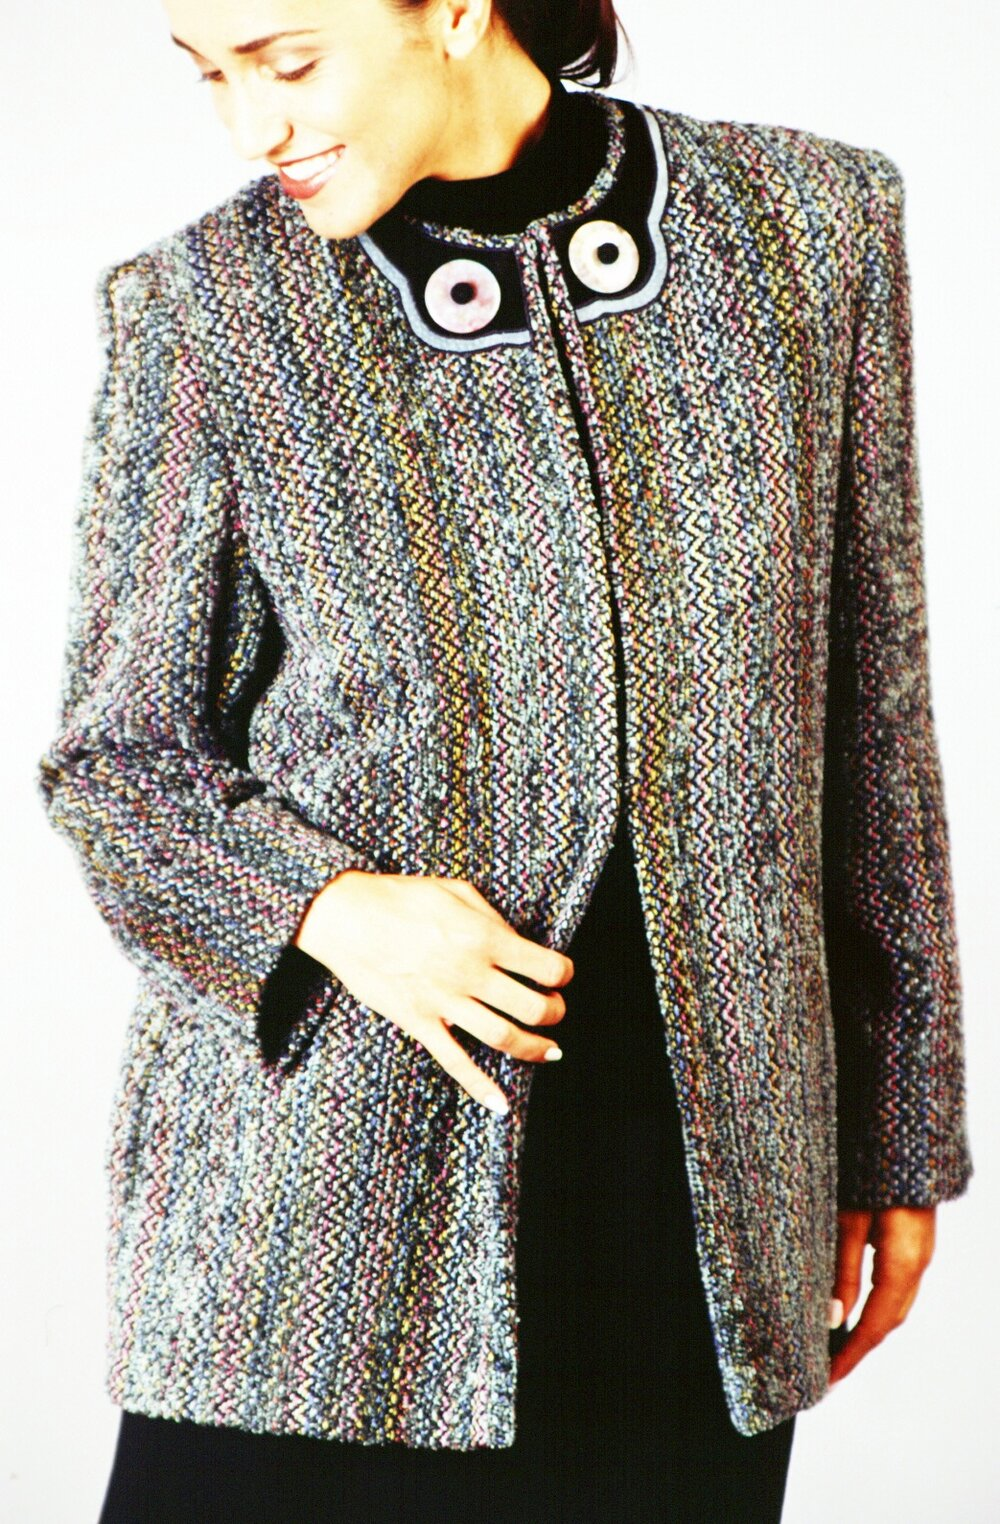 Handwoven Jacket, Business Apparel, Kathleen Weir-West 11.JPG